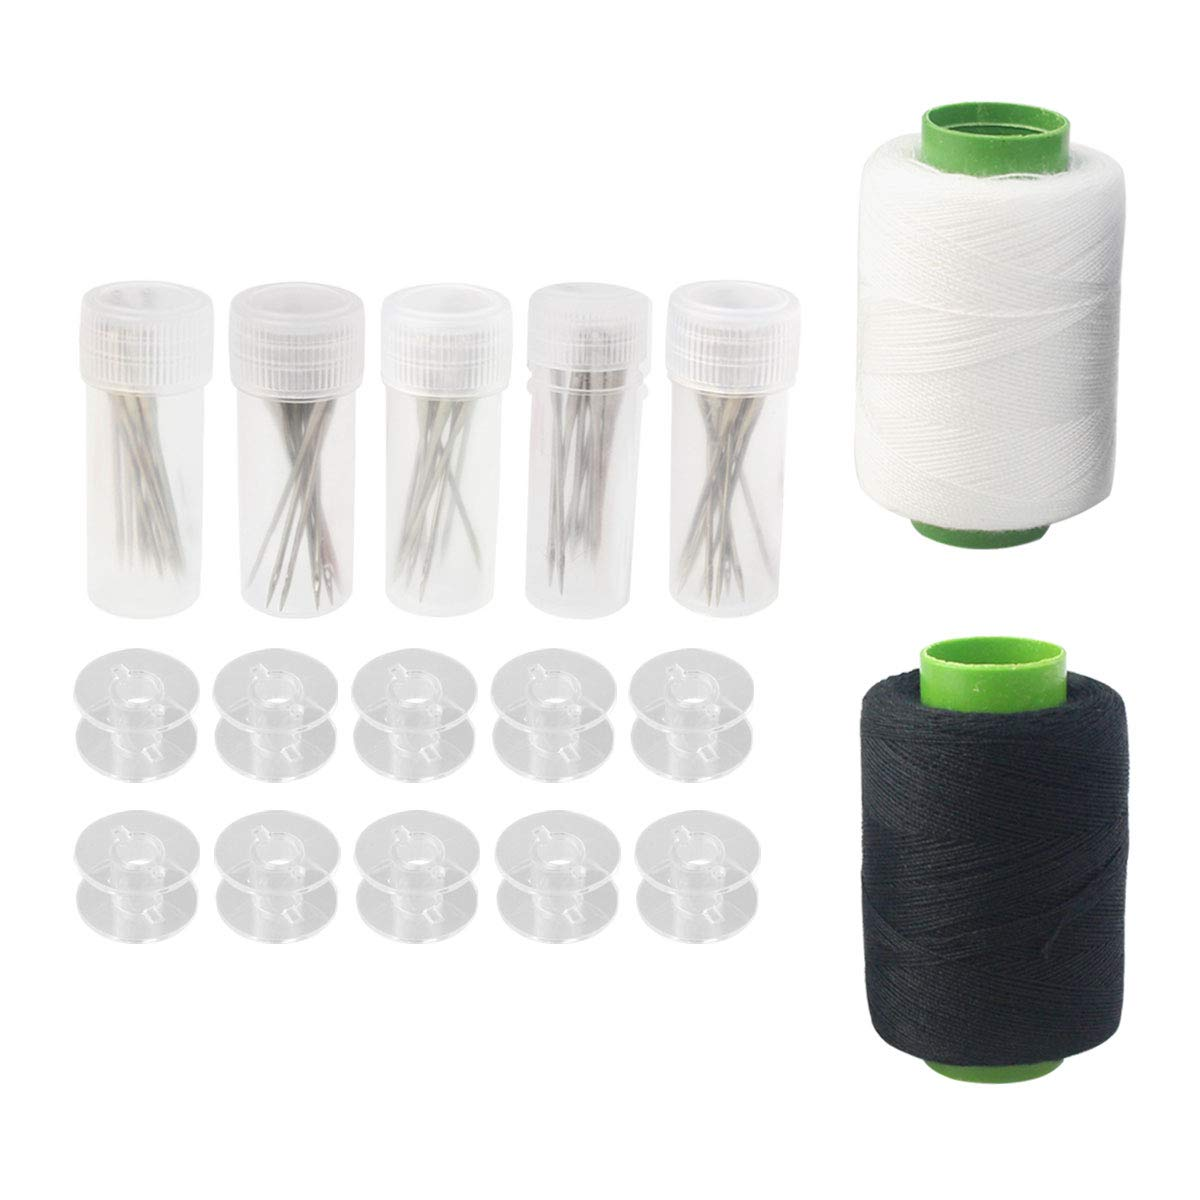 67 Pcs Sewing Tool Set, 50 Pieces Sewing Machine Needles Size 11, 12, 14, 16, 18 with 5 Pcs Needle Bottles + 10 Pieces Clear Plastic Sewing Machine Bobbins + Black and White Thread by mifengdaer